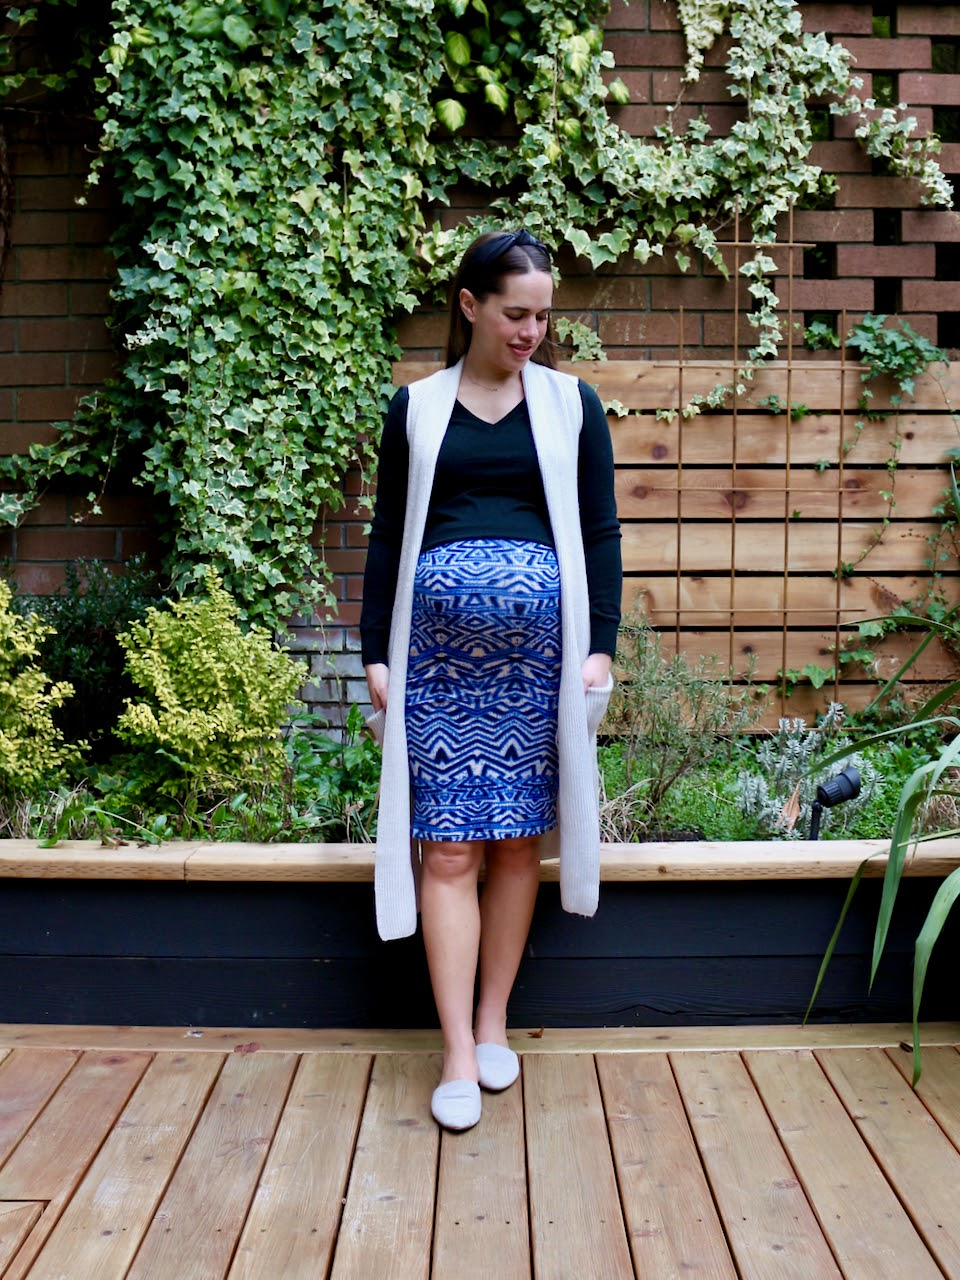 Jules in Flats - Bodycon Midi Skirt with Knit Duster Vest (Business Casual Workwear on a Budget)